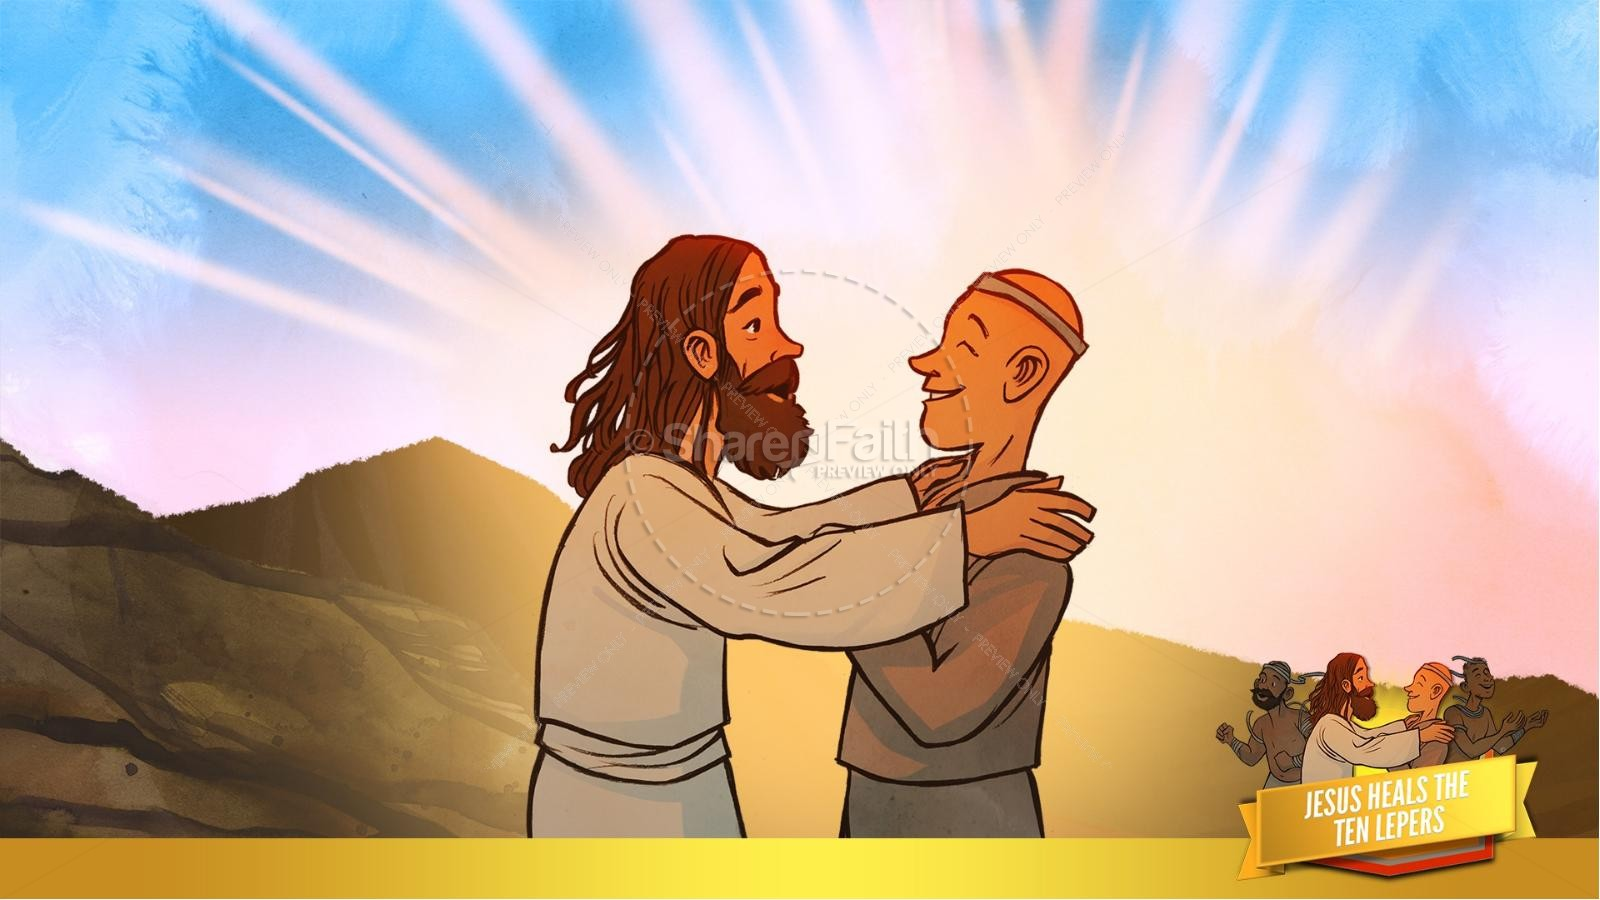 Luke 17 Ten lepers Kids Bible Story